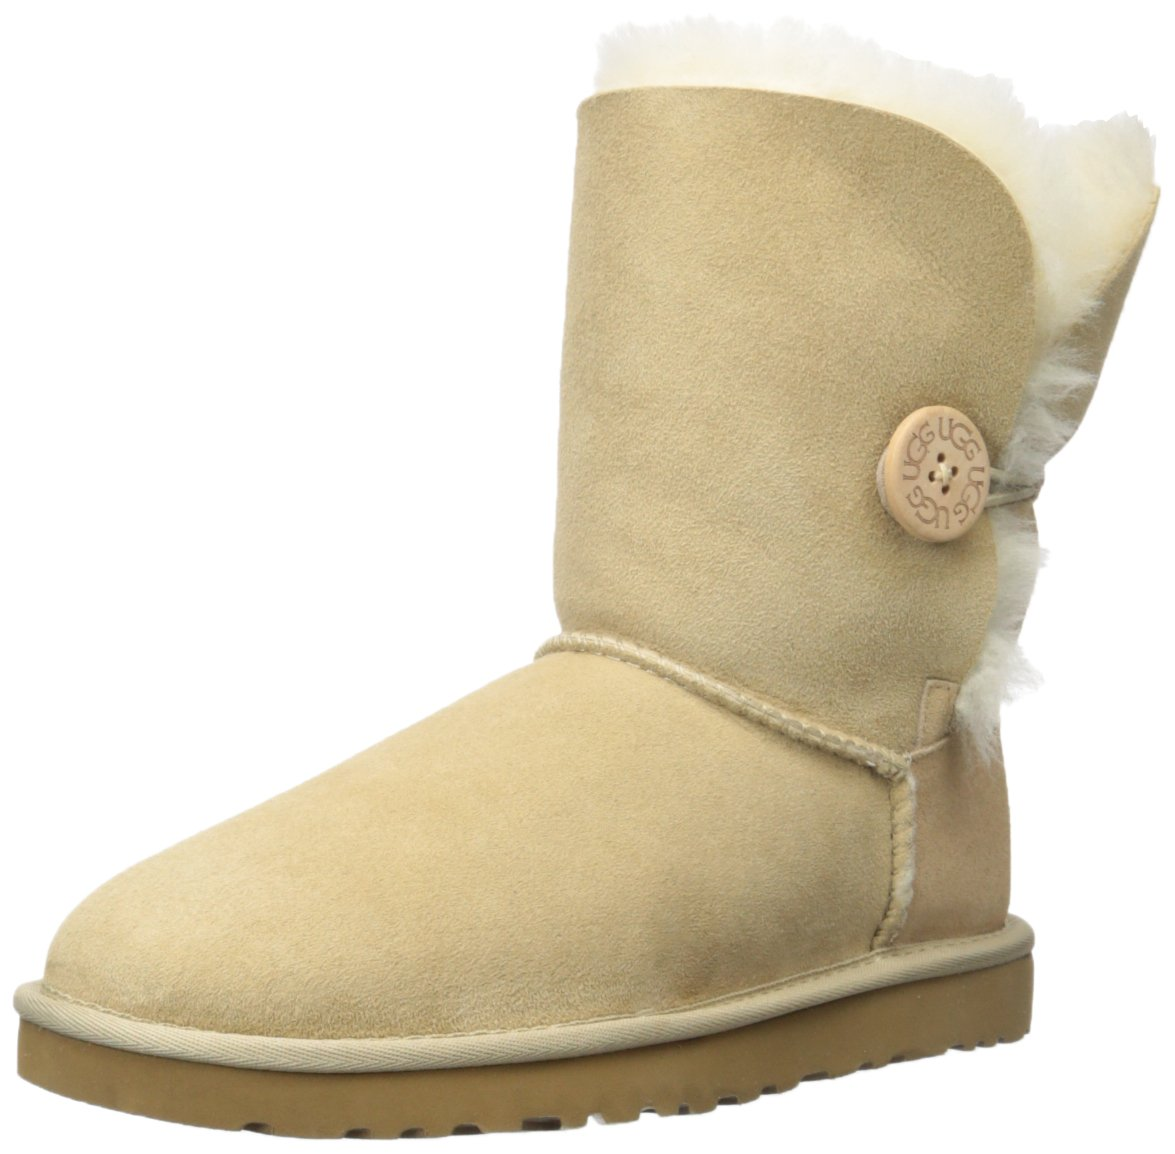 UGG Australia Bailey Button  Boot Footwear, Sand, 5M by UGG